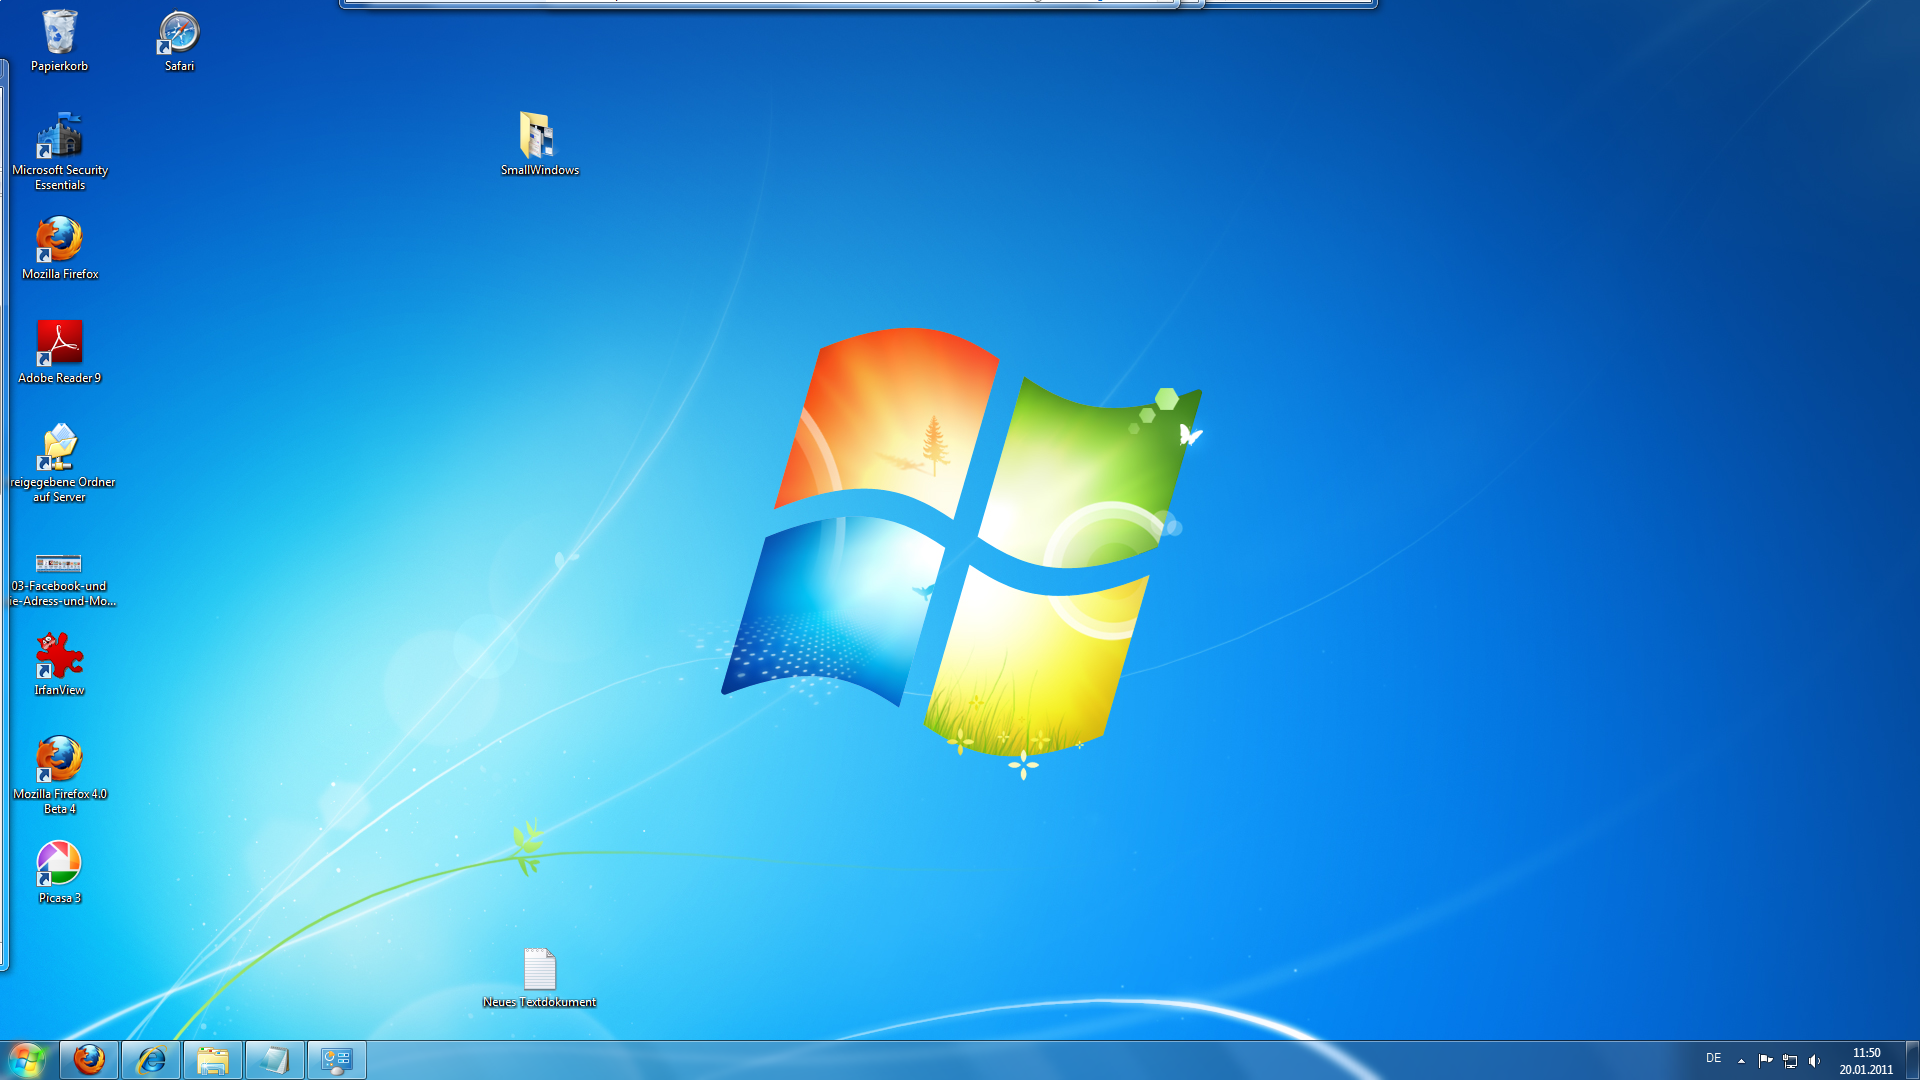 02-SmallWindows-Konfiguration-Hotzone-Desktop-470.png